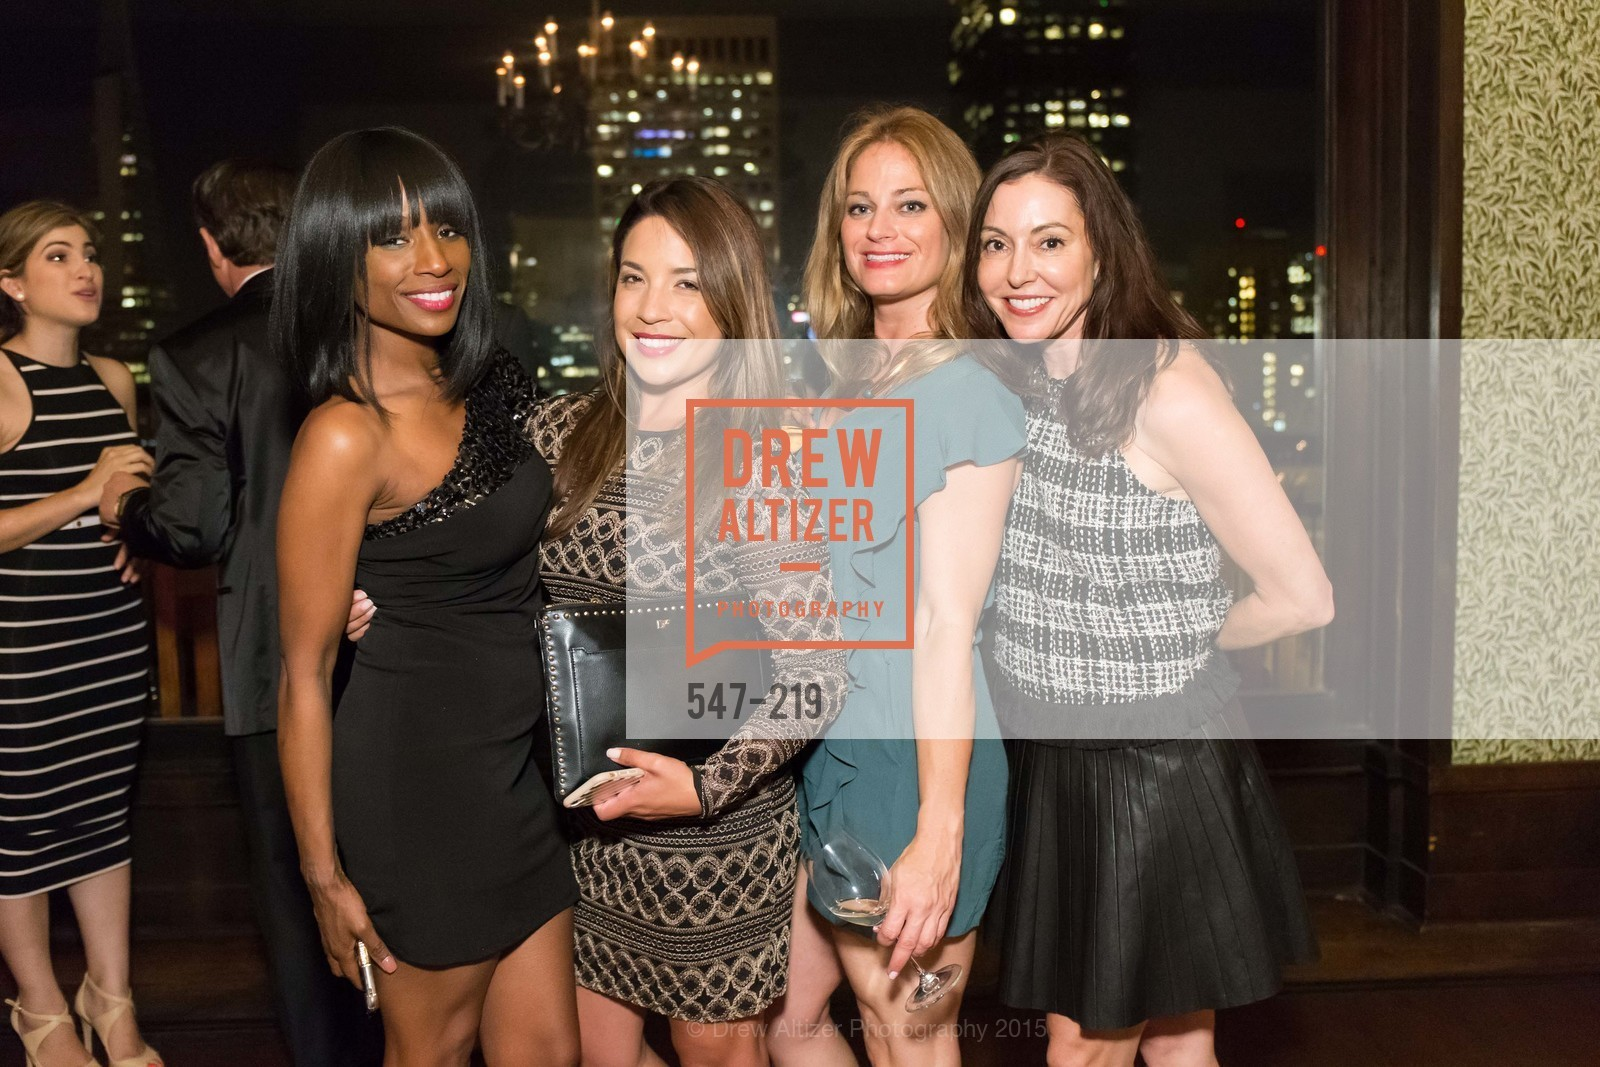 Pernella Sommerville, Marybeth Lamotte, Champagne Reception & Screening of Million Dollar Listing San Francisco, University Club. 800 Powell St, August 5th, 2015,Drew Altizer, Drew Altizer Photography, full-service agency, private events, San Francisco photographer, photographer california